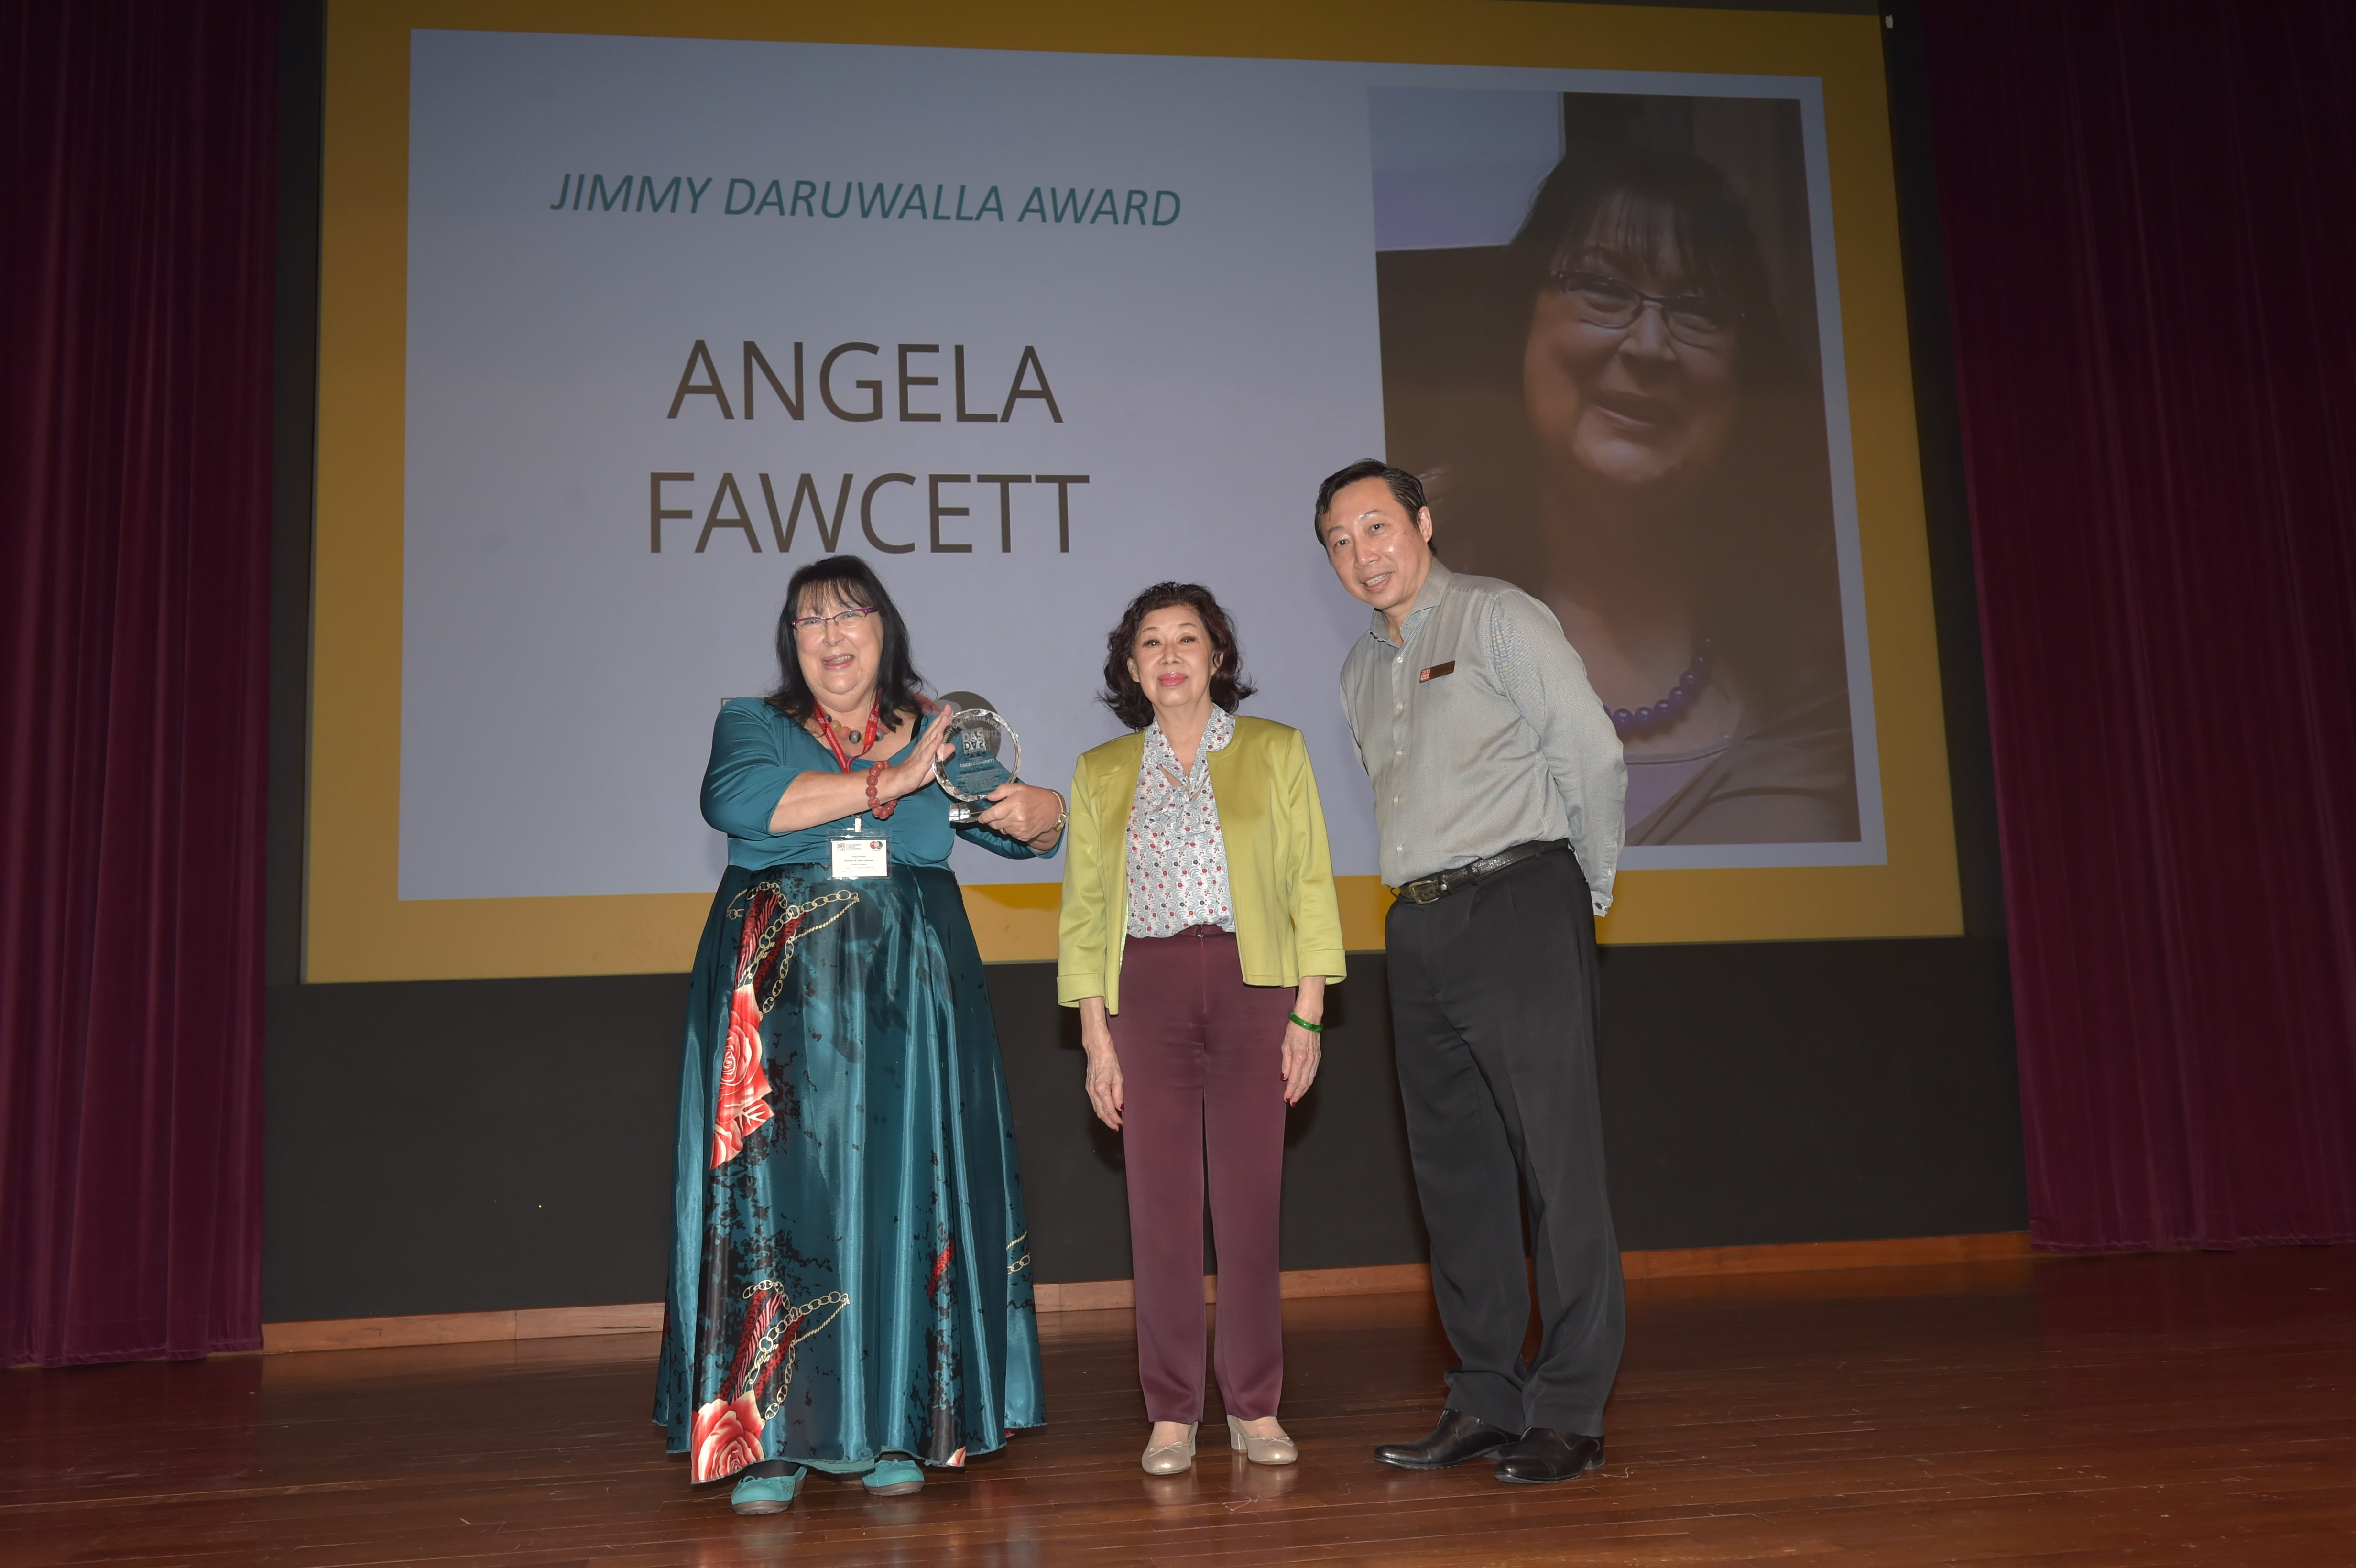 Unite 2017 Jimmy Daruwalla Award